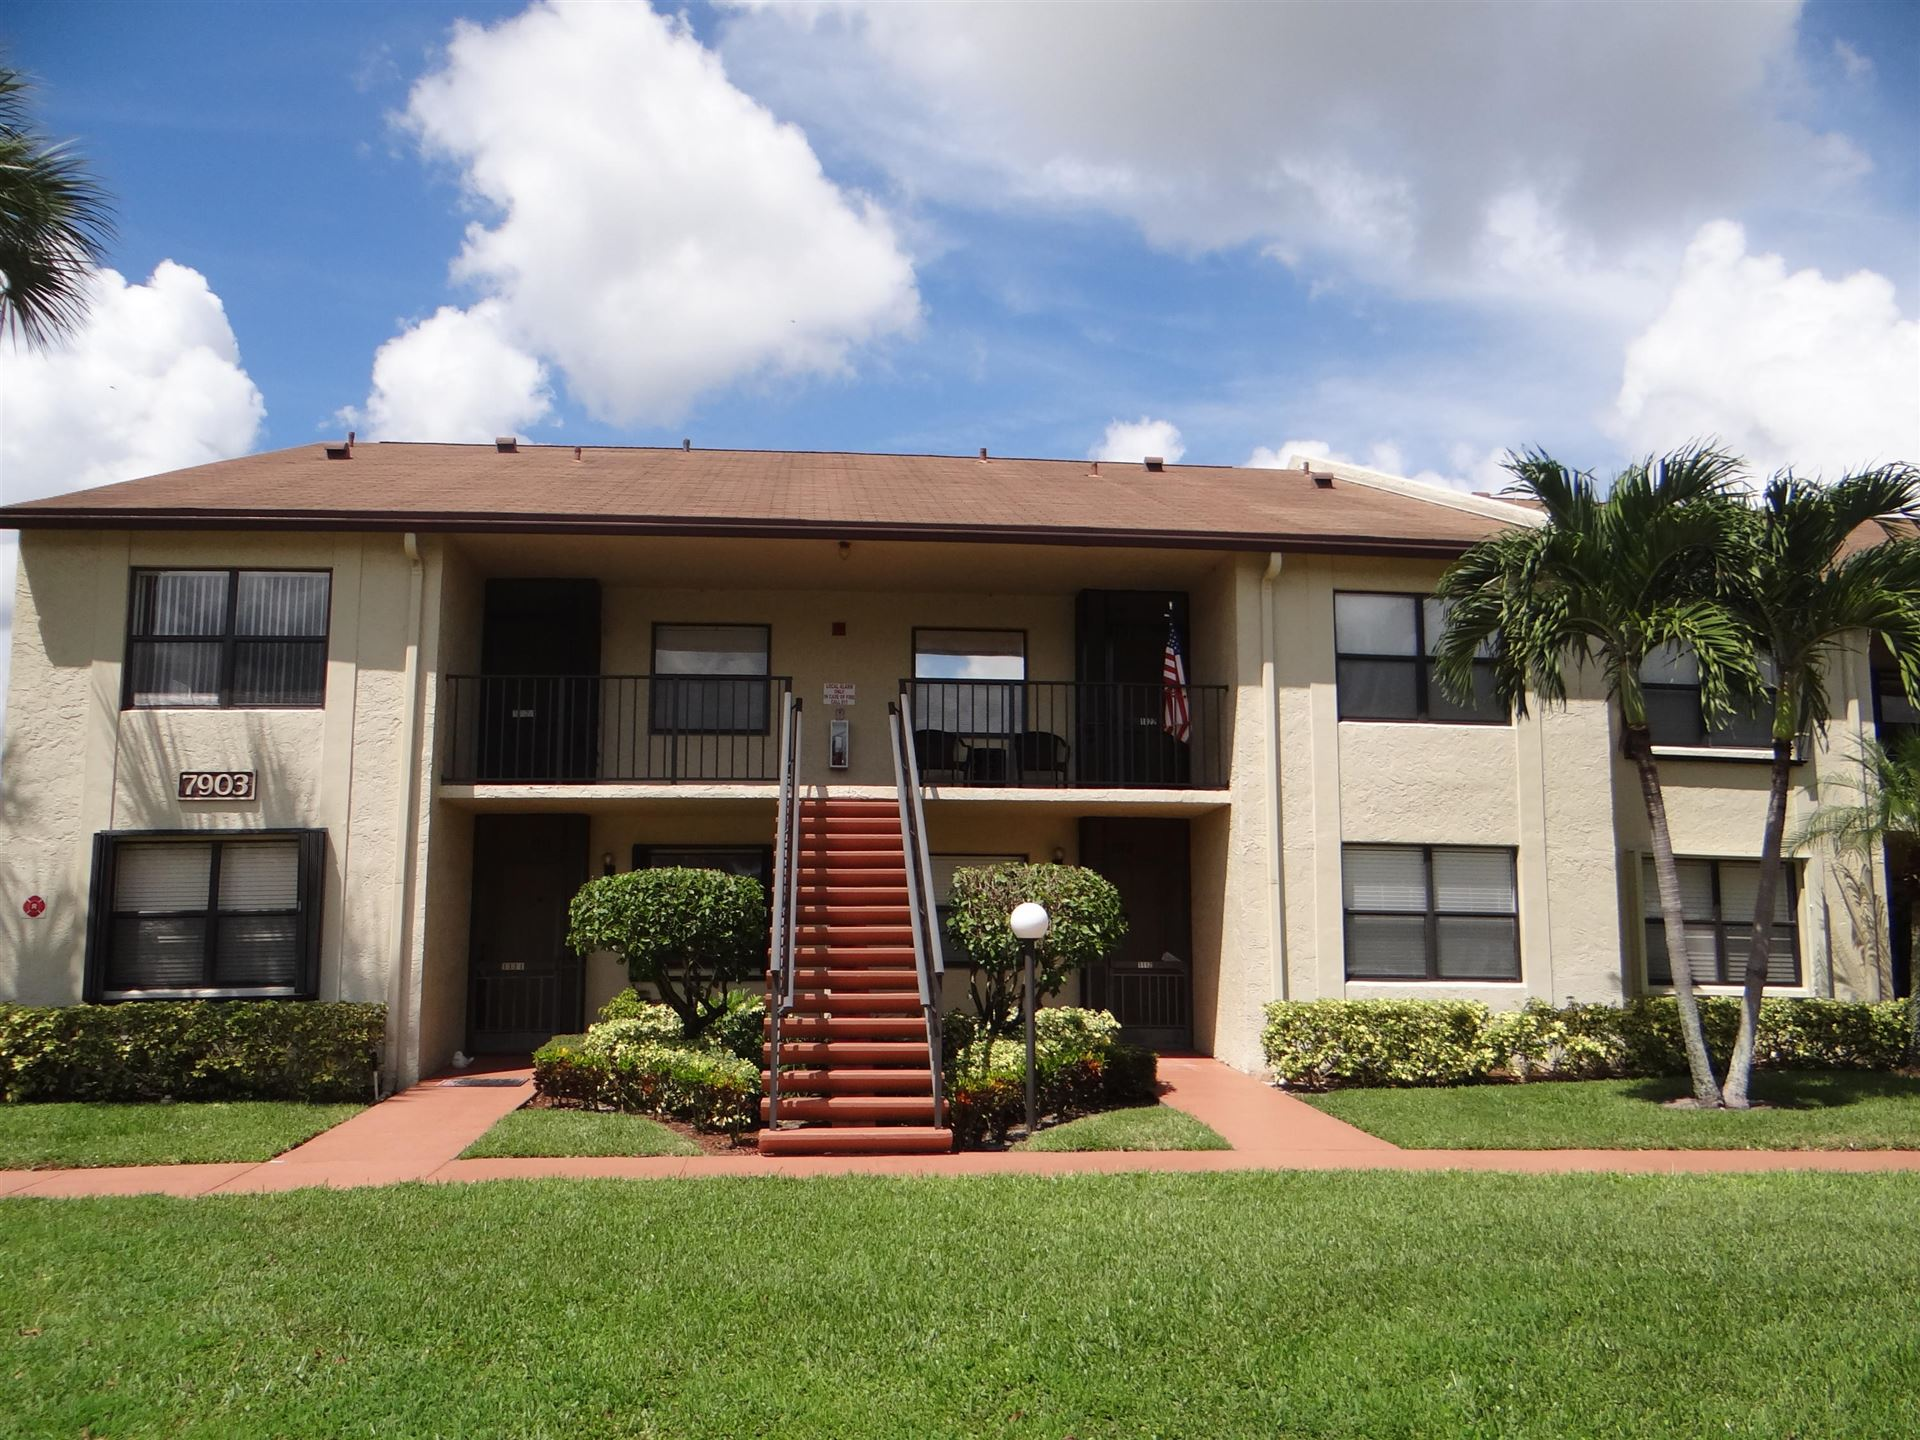 7903 Willow Spring Drive #1112, Lake Worth, FL 33467 - #: RX-10650761